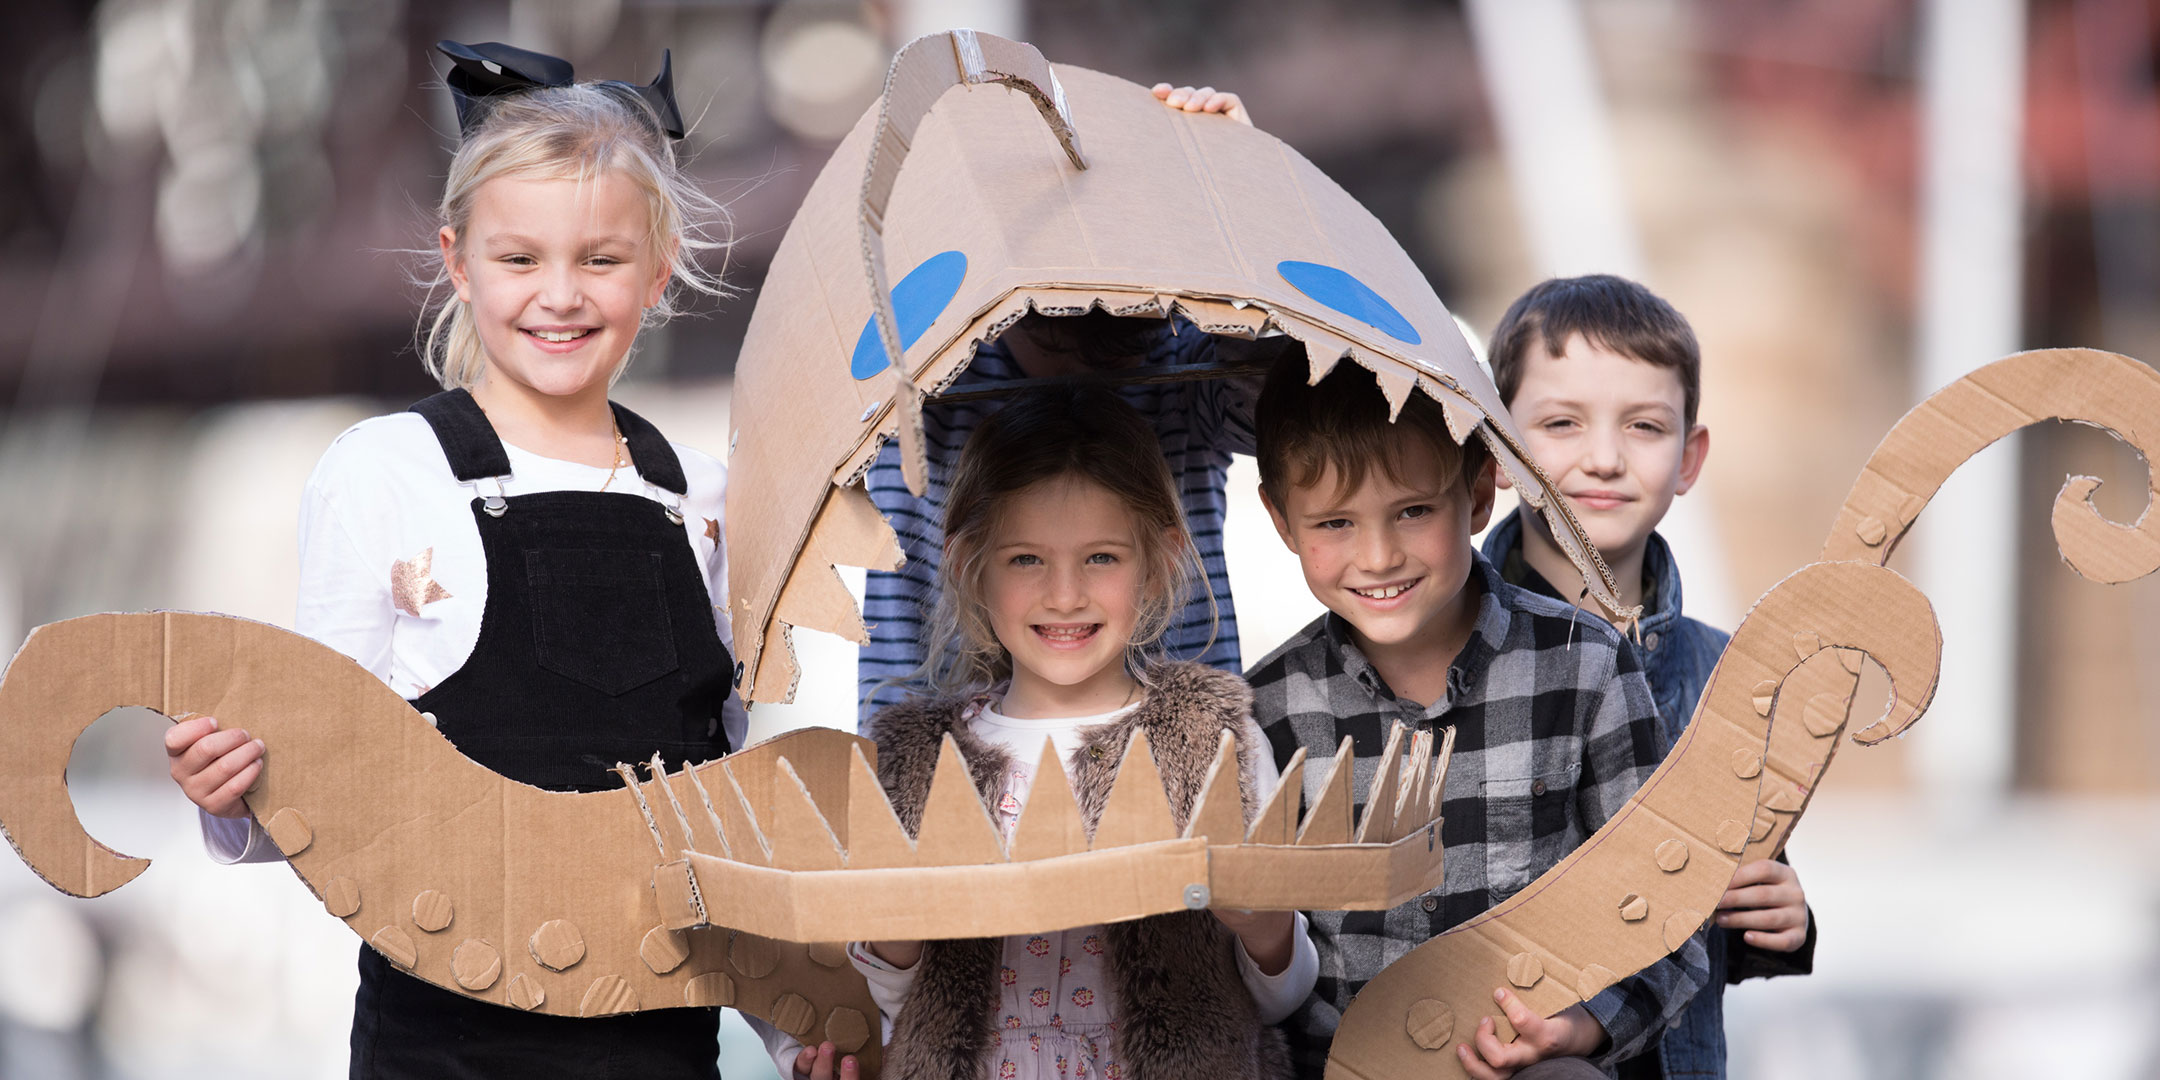 Kids with cardboard sea creature